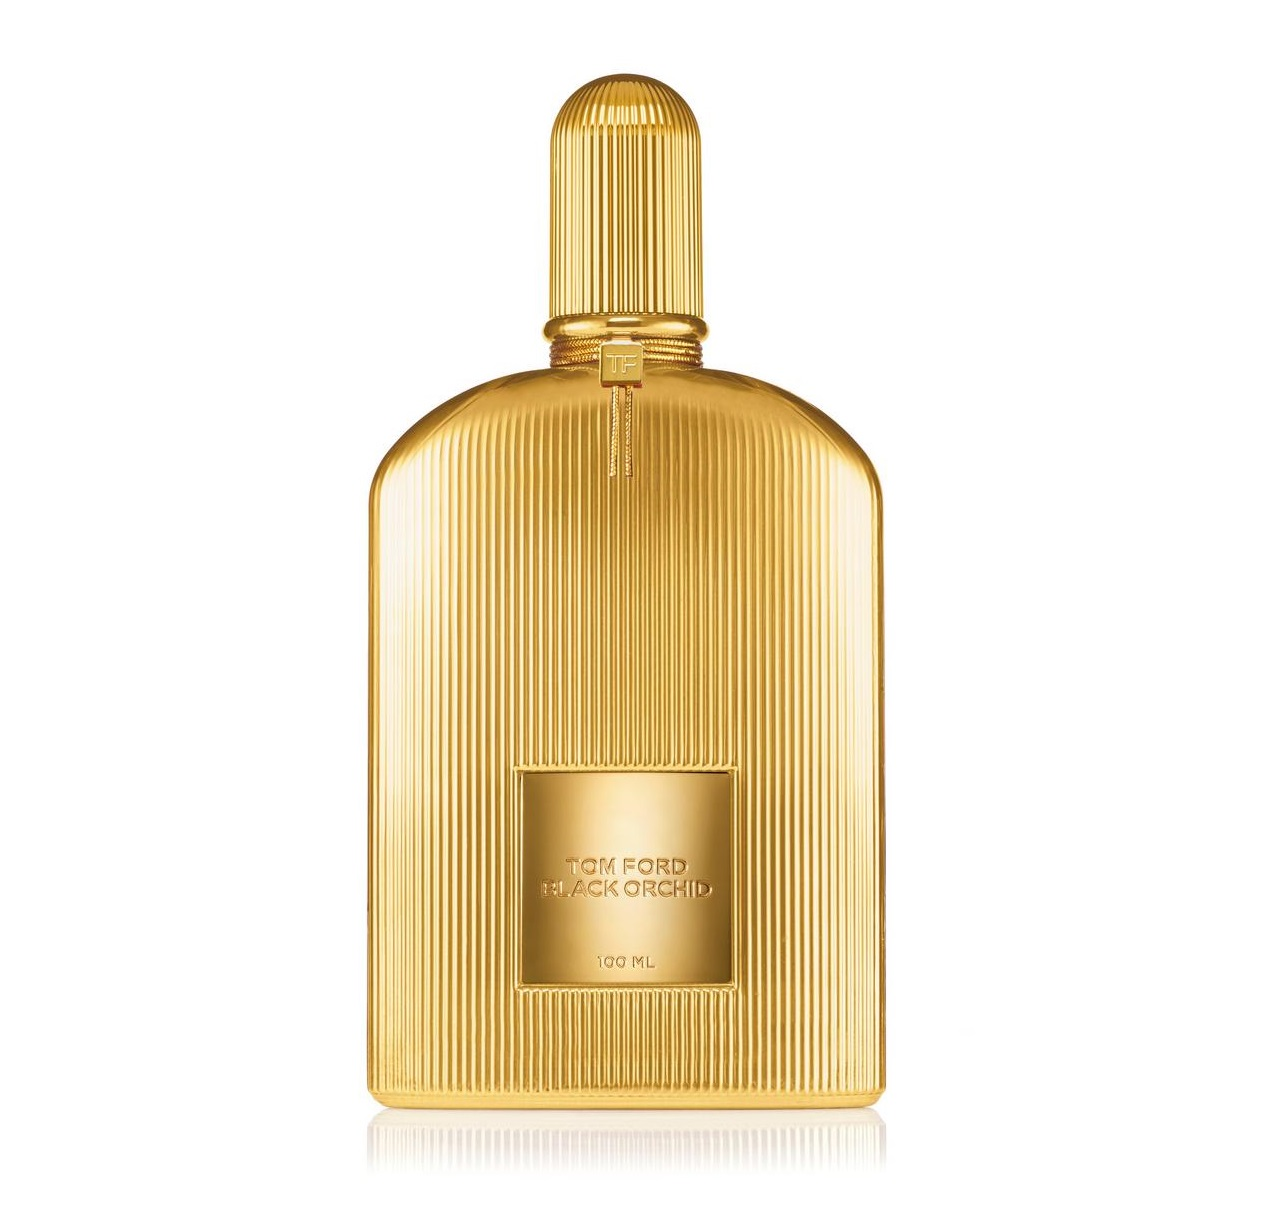 Tom Ford Black Orchid Parfum ~ Nuevas Fragancias